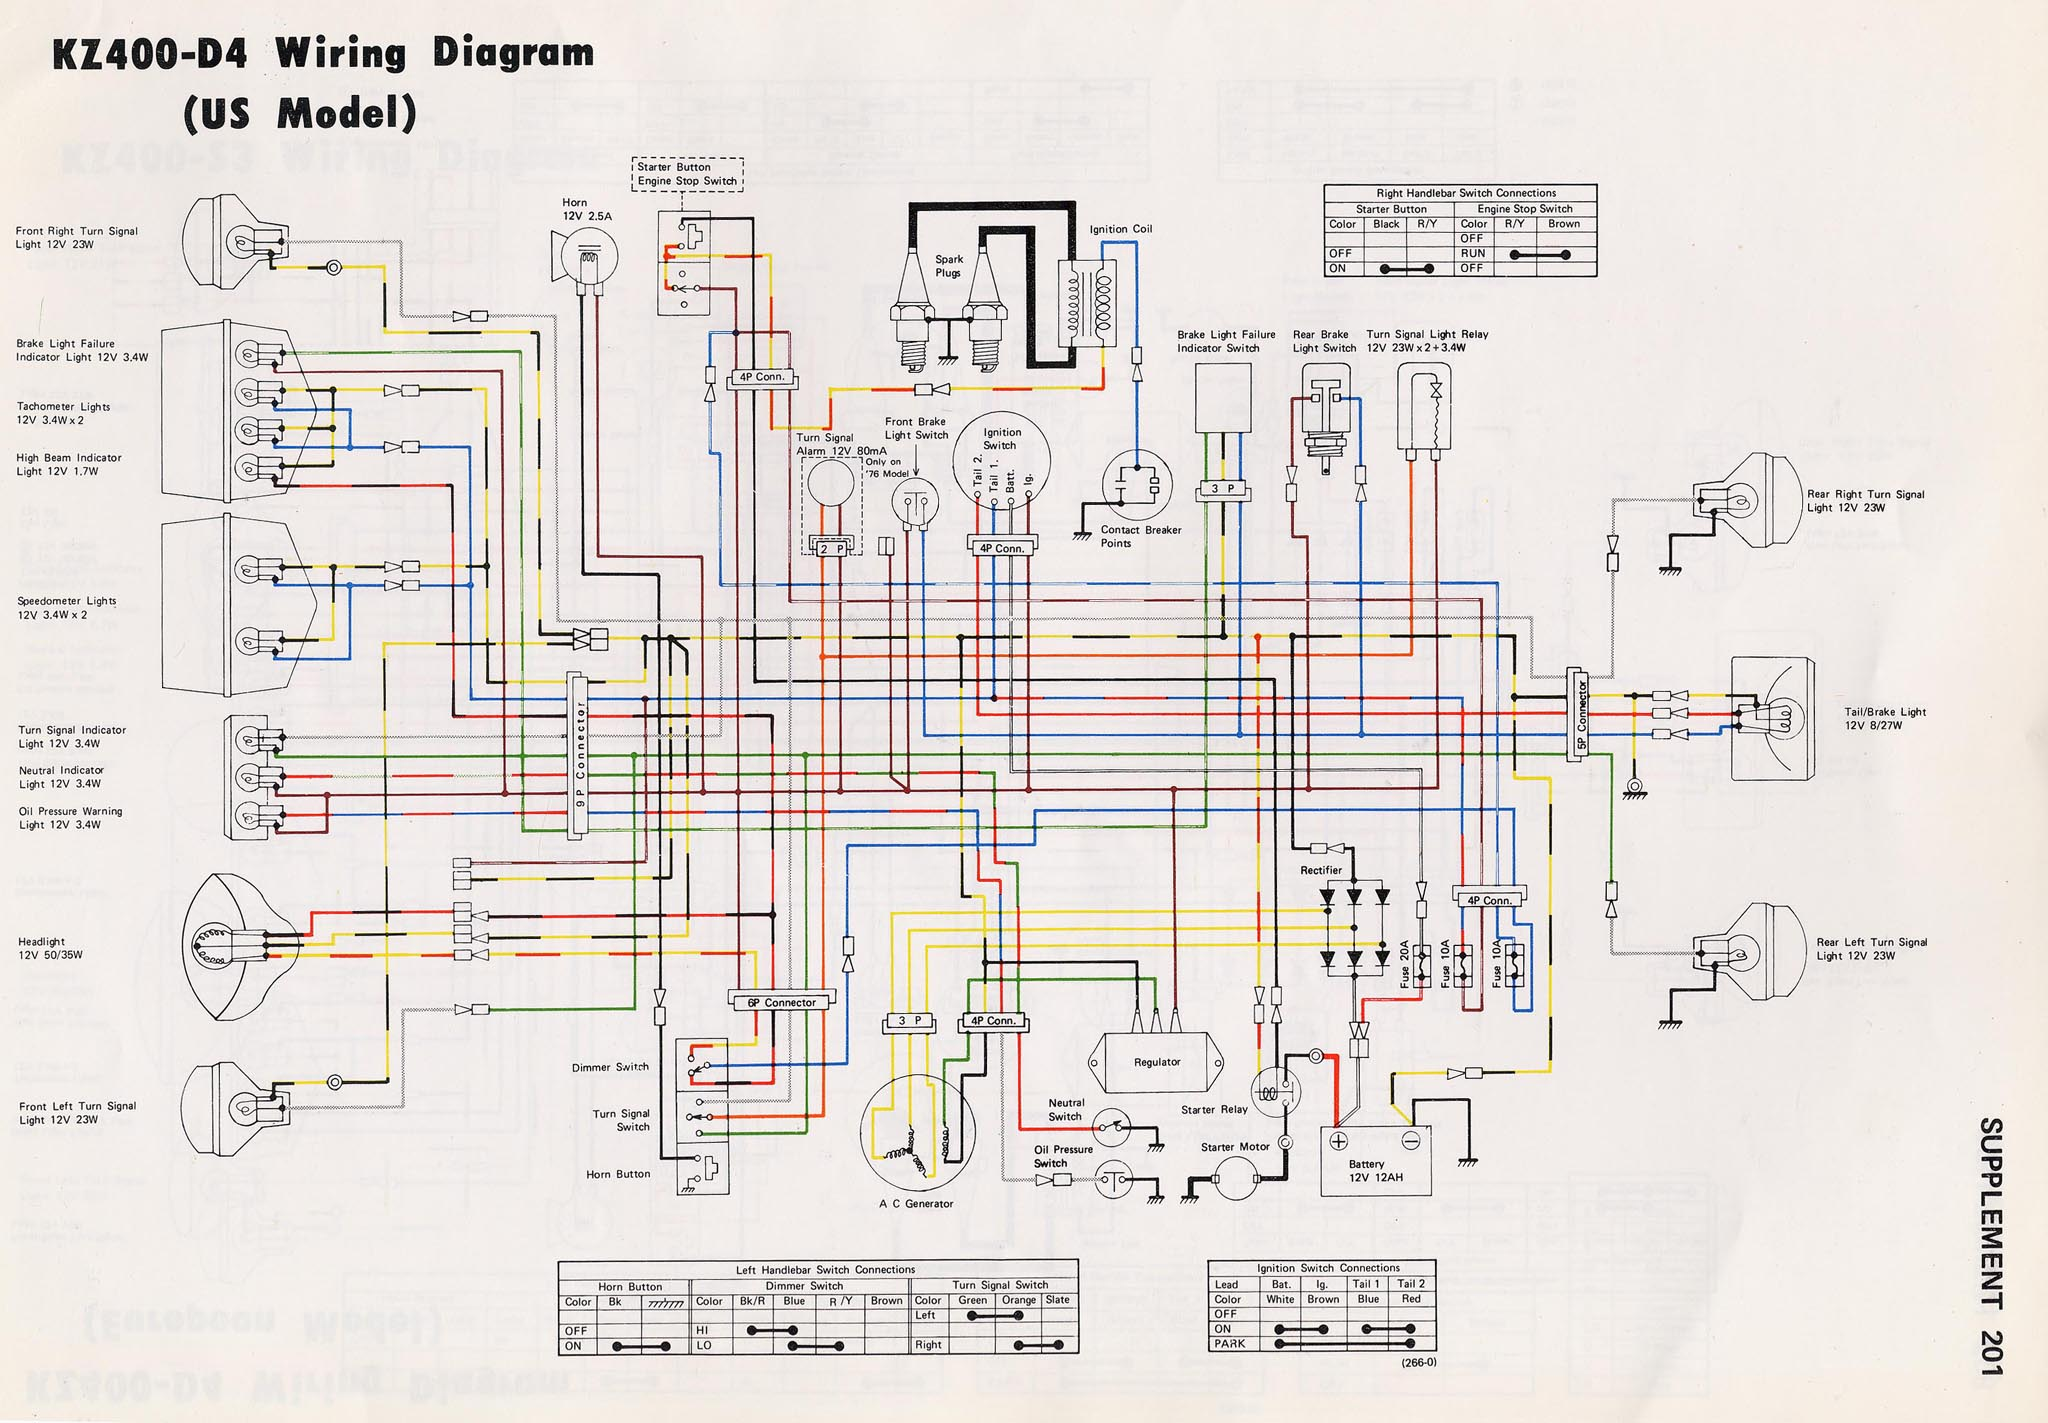 Klt 200 Wiring Diagram Libraries Kawasaki H1d Simple Diagrams1977 Kz400 Library